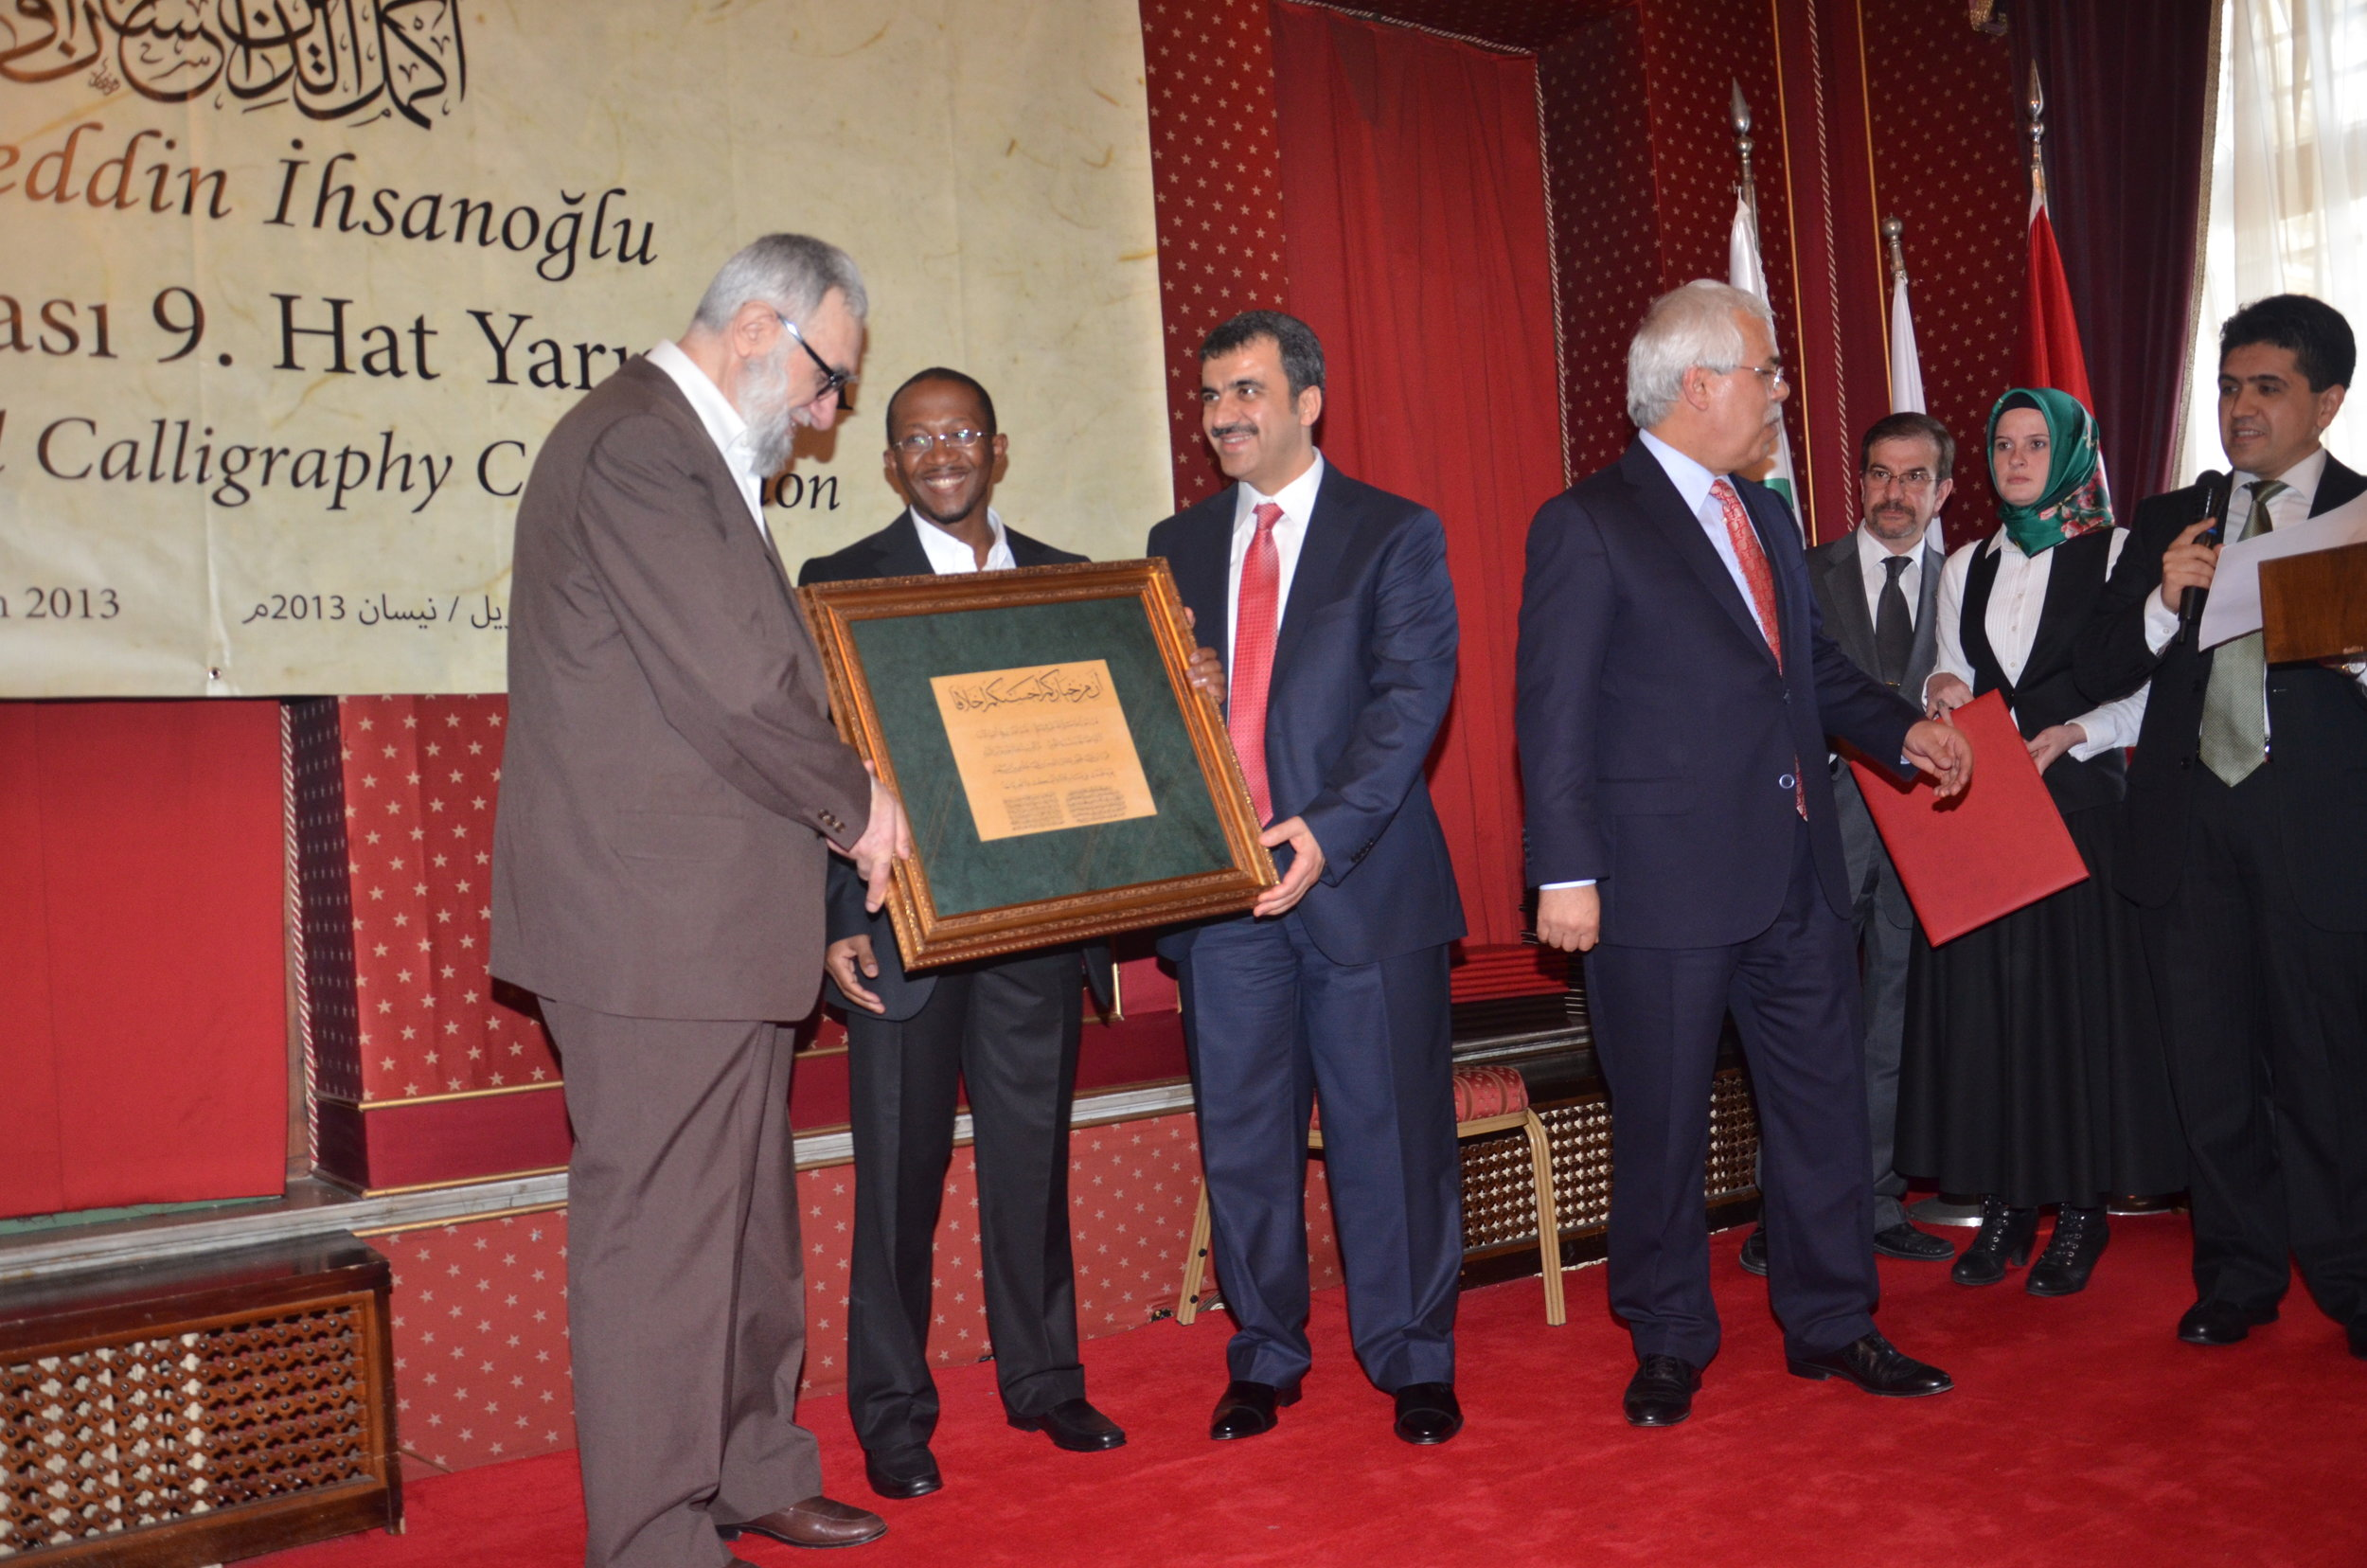 Muhammed Hobe receiving his ijaza (license) from grand master Hasan Celebi and event organisers.